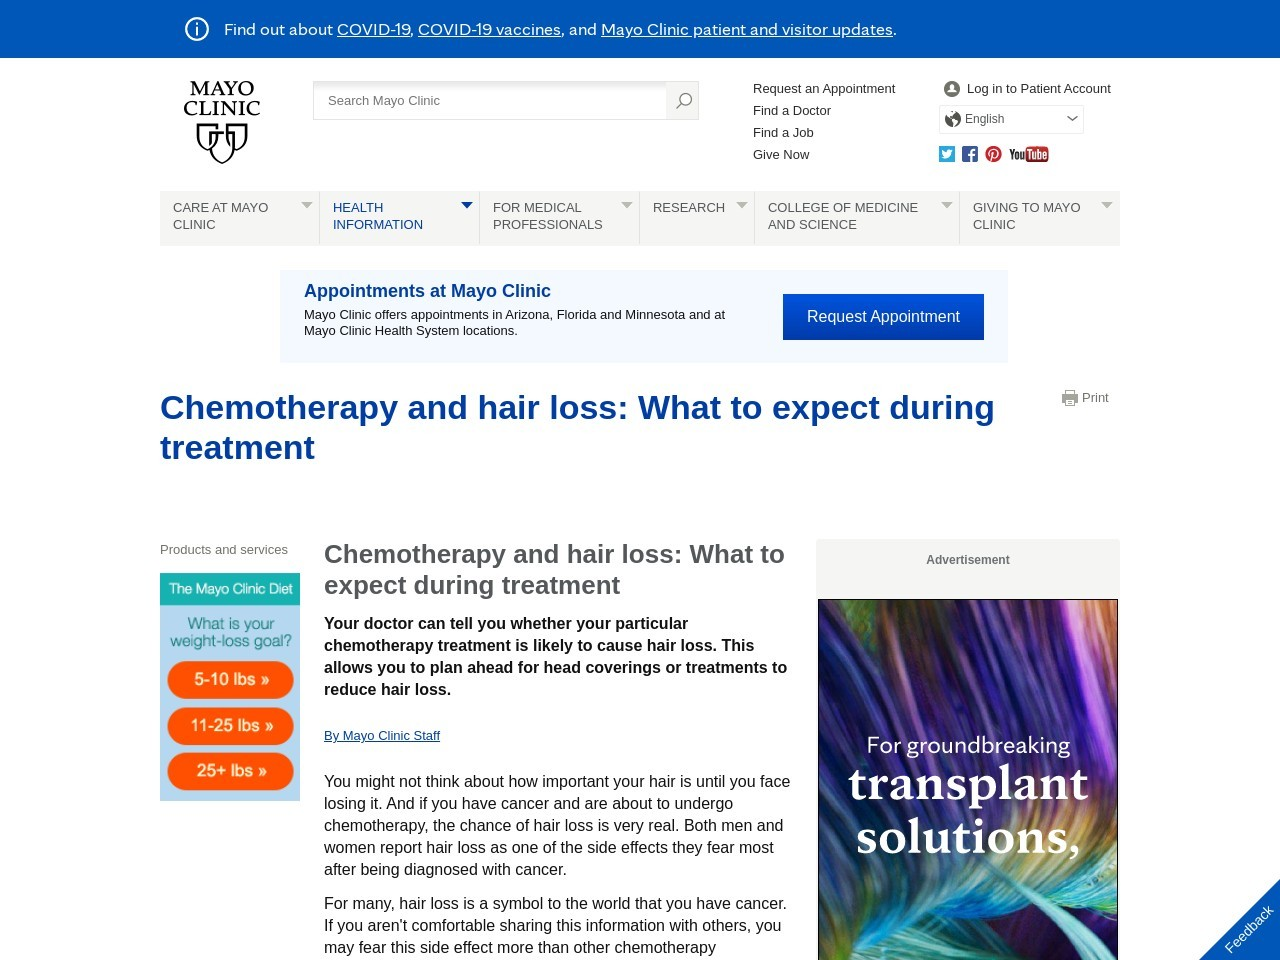 The emotions of hair loss during cancer treatment